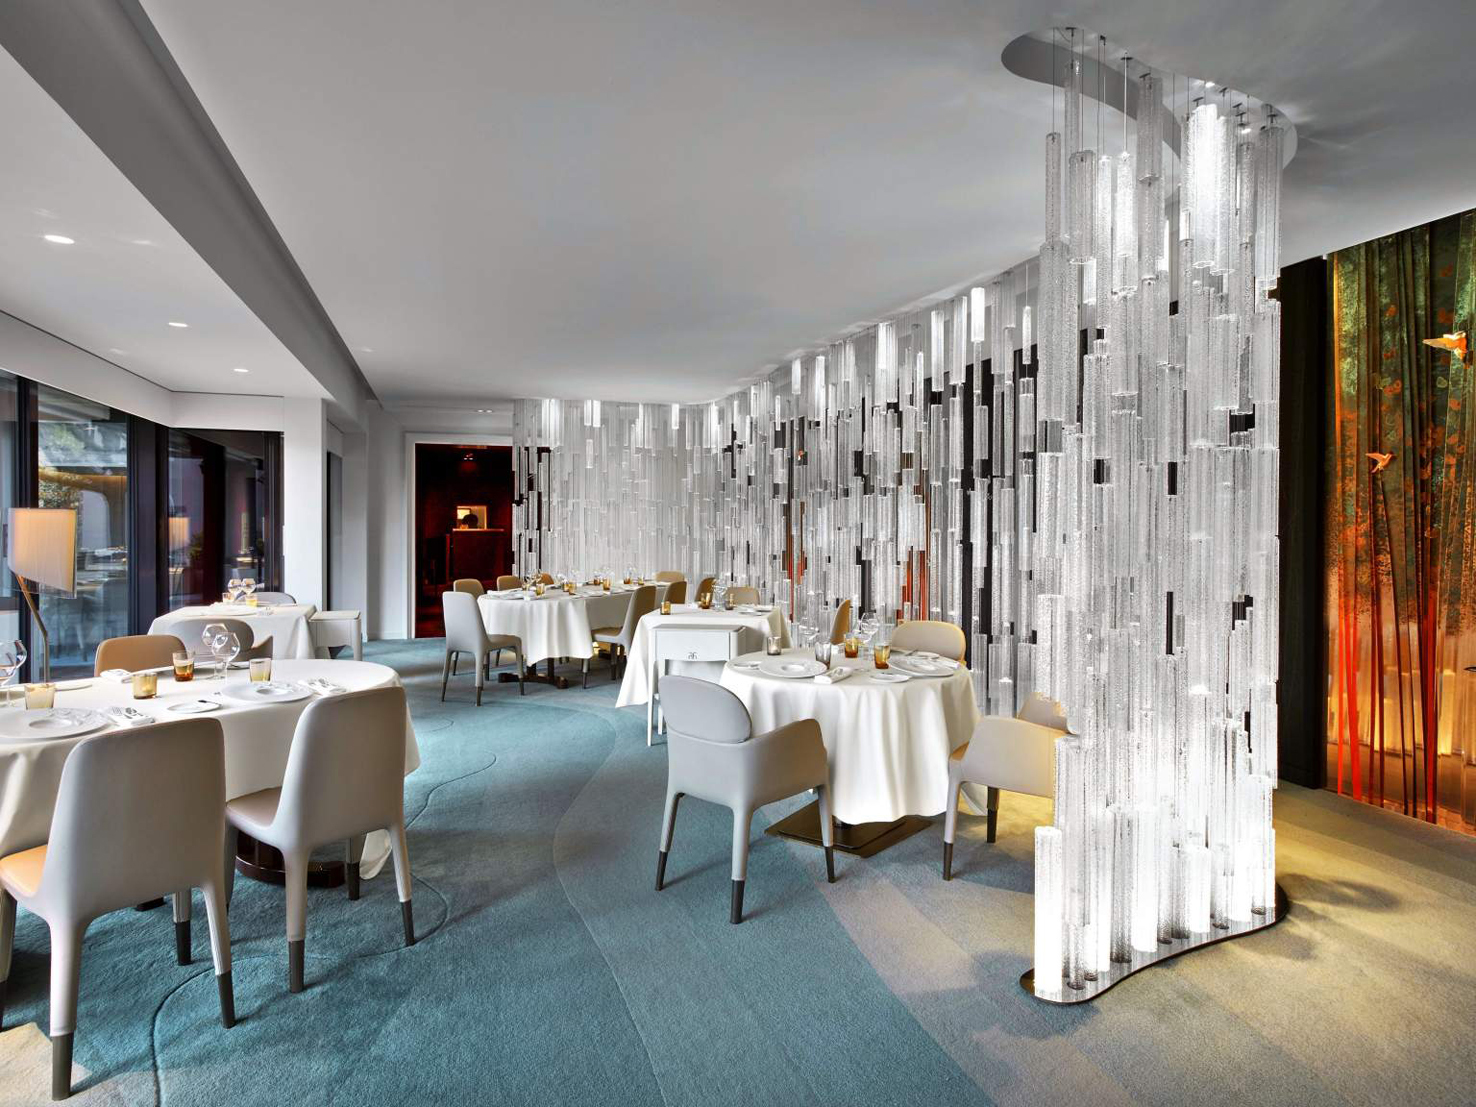 Great In An Attempt To Make Guests Enjoy The View Both Of The Plate And The Room,  The Architectural Firm Jouin Manku Has Divided The Restaurant Into Four  Areas ...